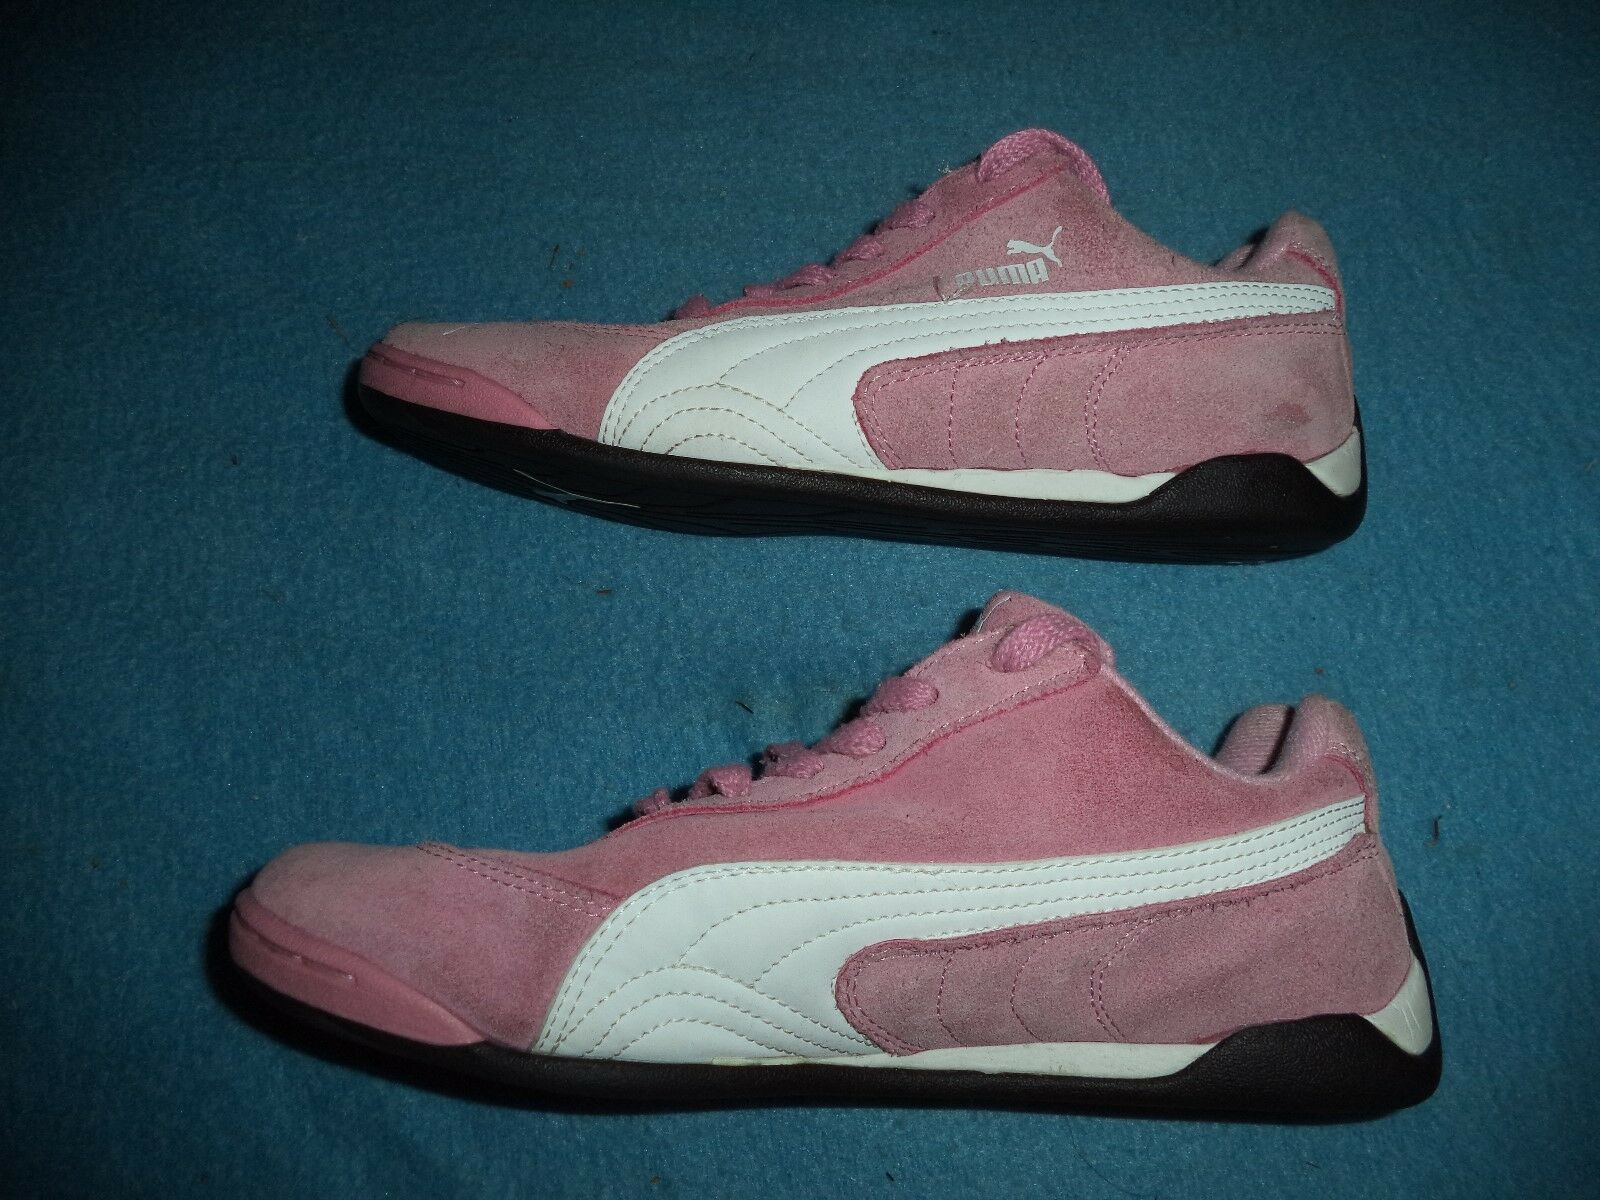 PUMA PINK SHOES WOMEN'S SIZE 5 1/2 Casual wild